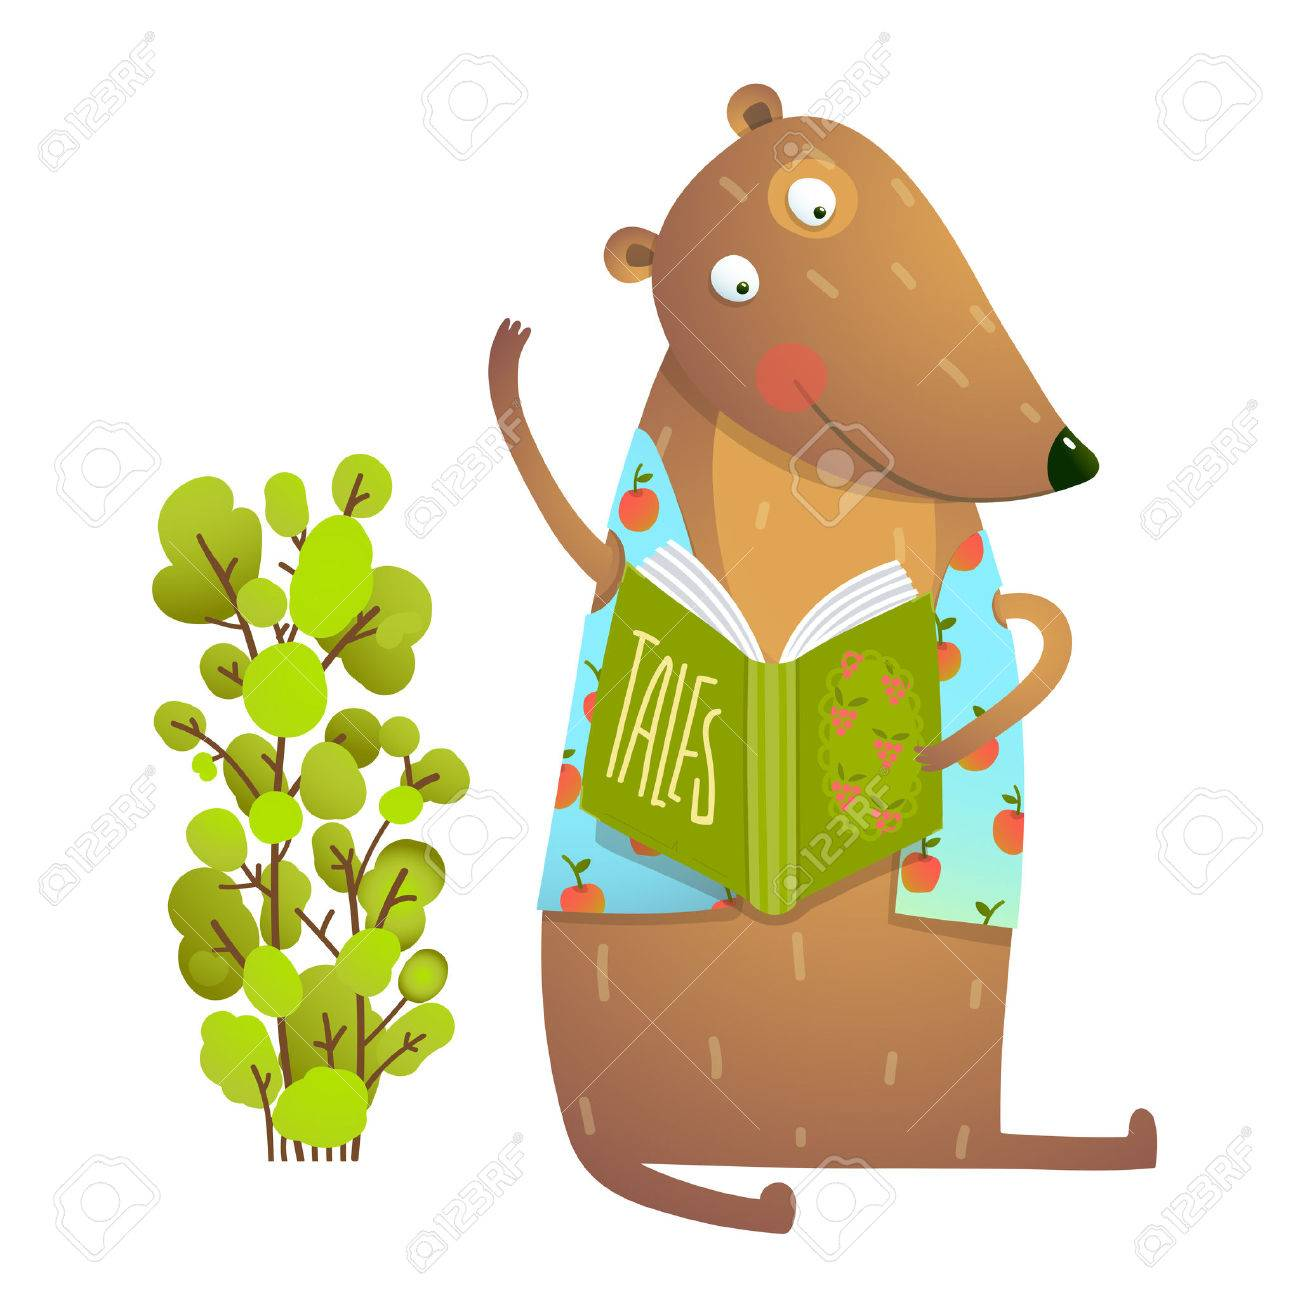 Baby Teddy Bear Character Reading Book Learning. Bear cub cute sitting studying and learning adorable animal illustration. Vector illustration. - 64067523